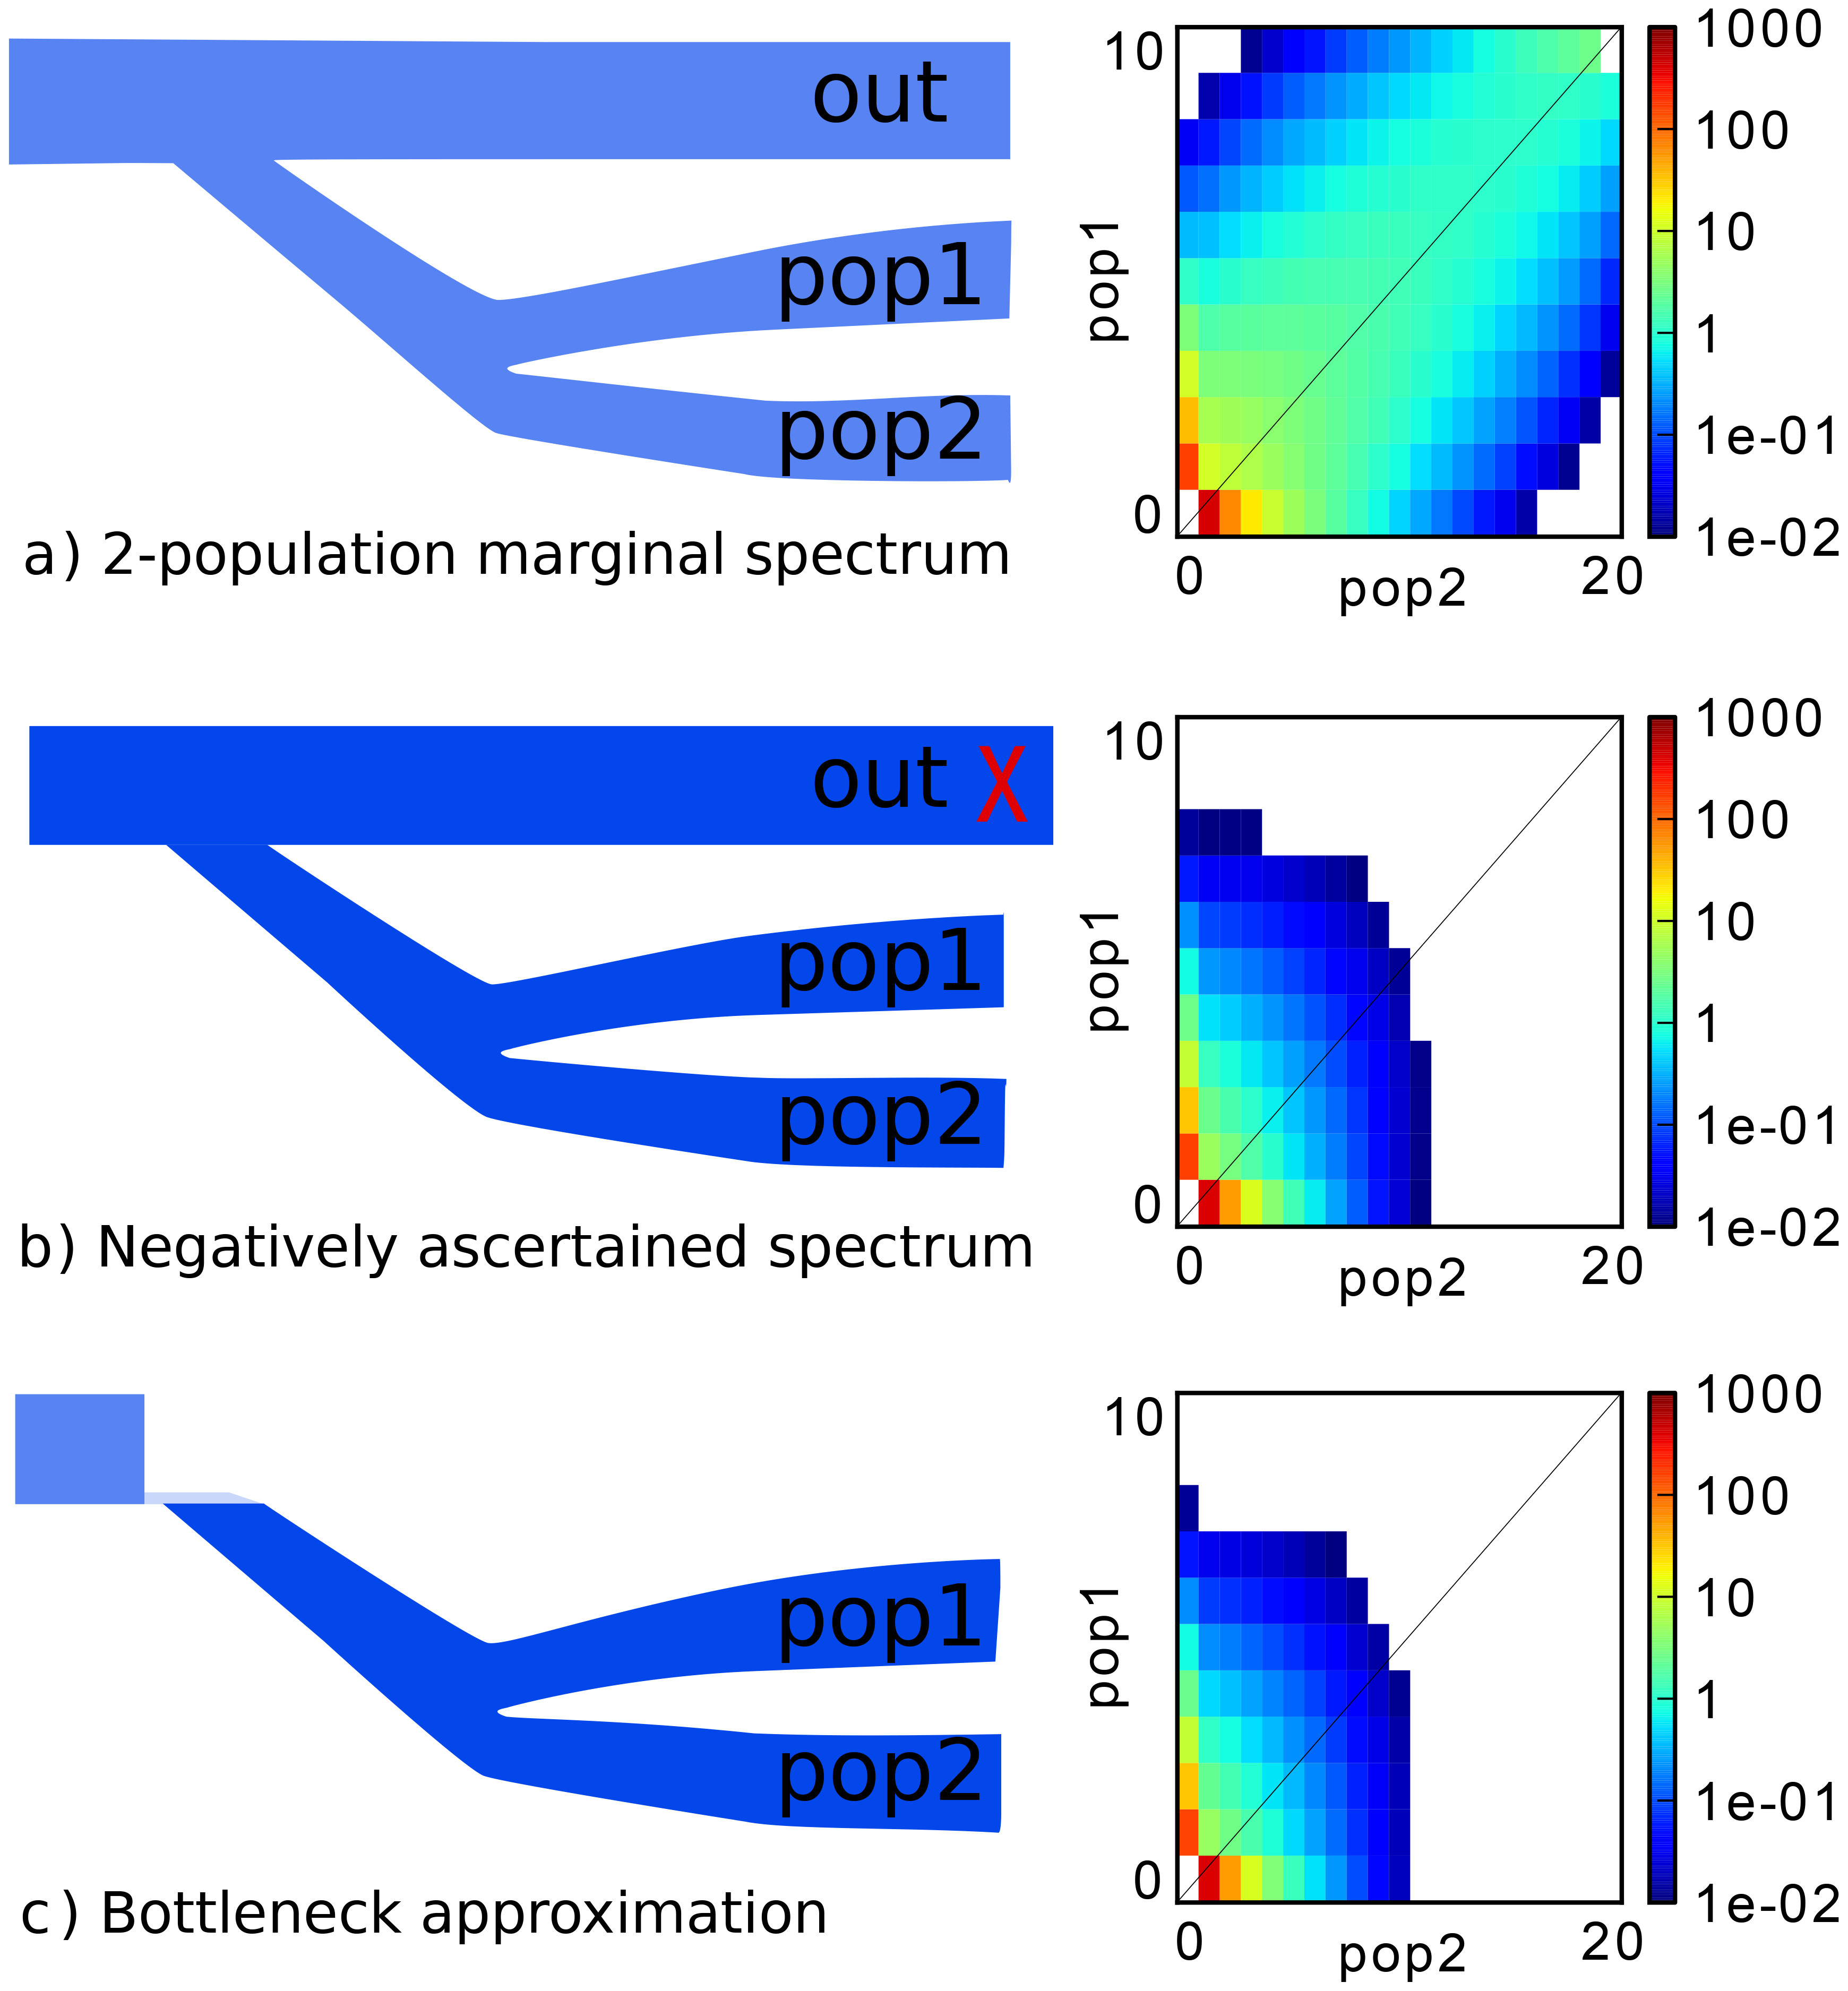 Illustration of the negative ascertainment scheme, with simulation.